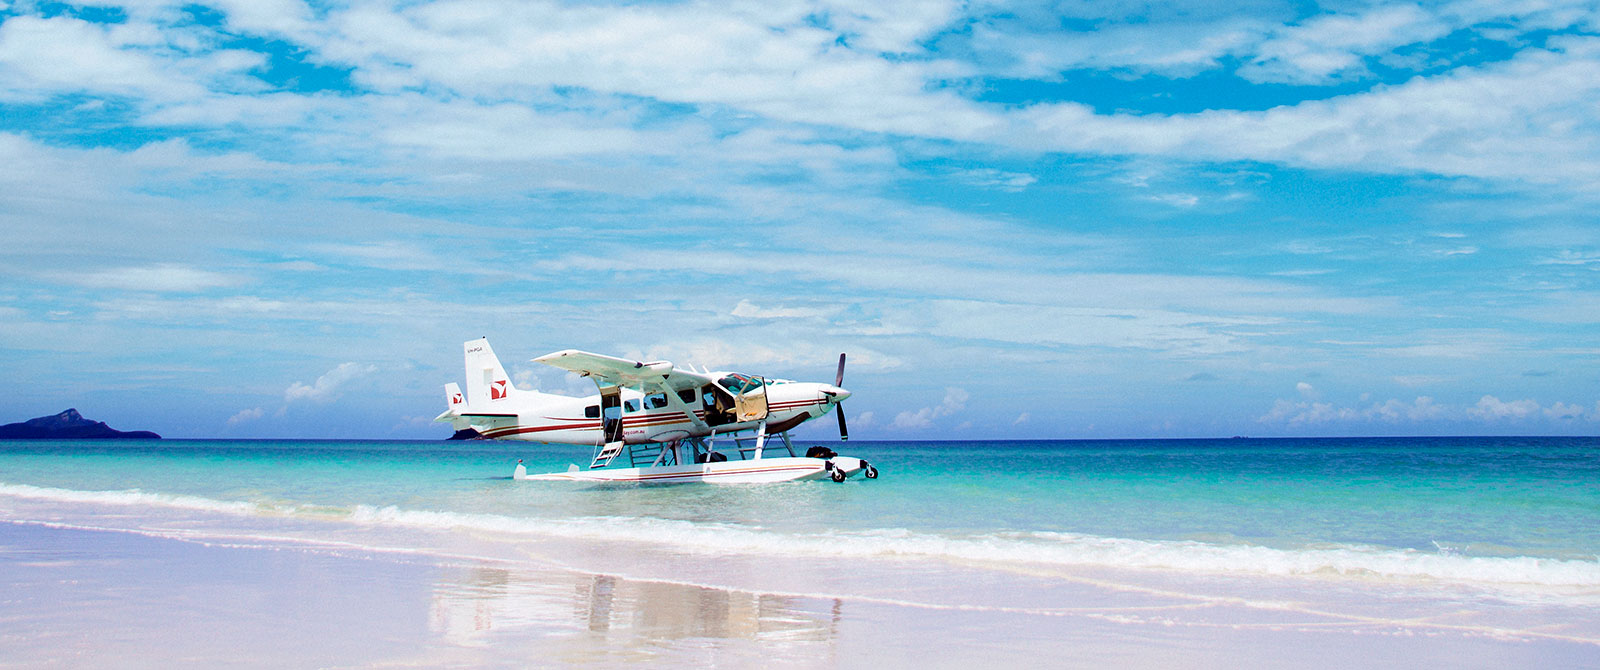 Seaplane Landing on Whitehaven Beach, Great Barrier Reef, Australia